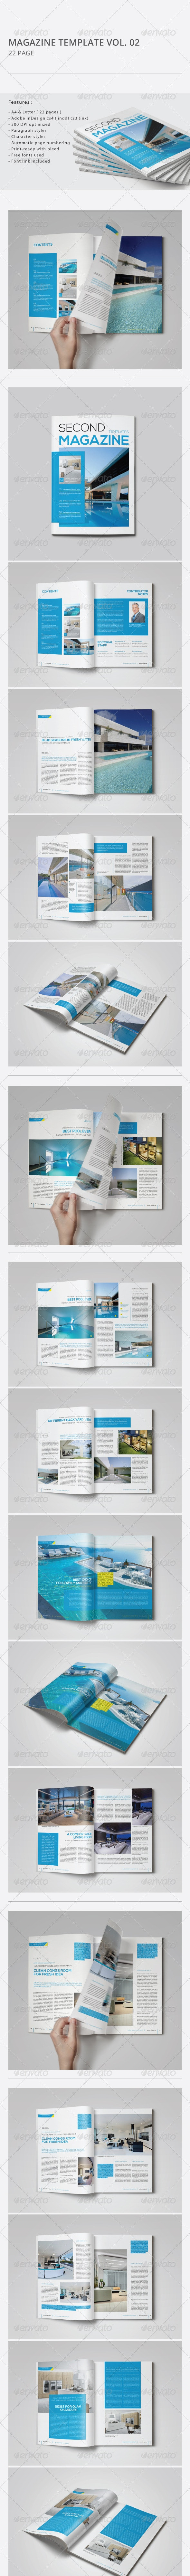 Indesign Magazine Template Vol.02 - Magazines Print Templates